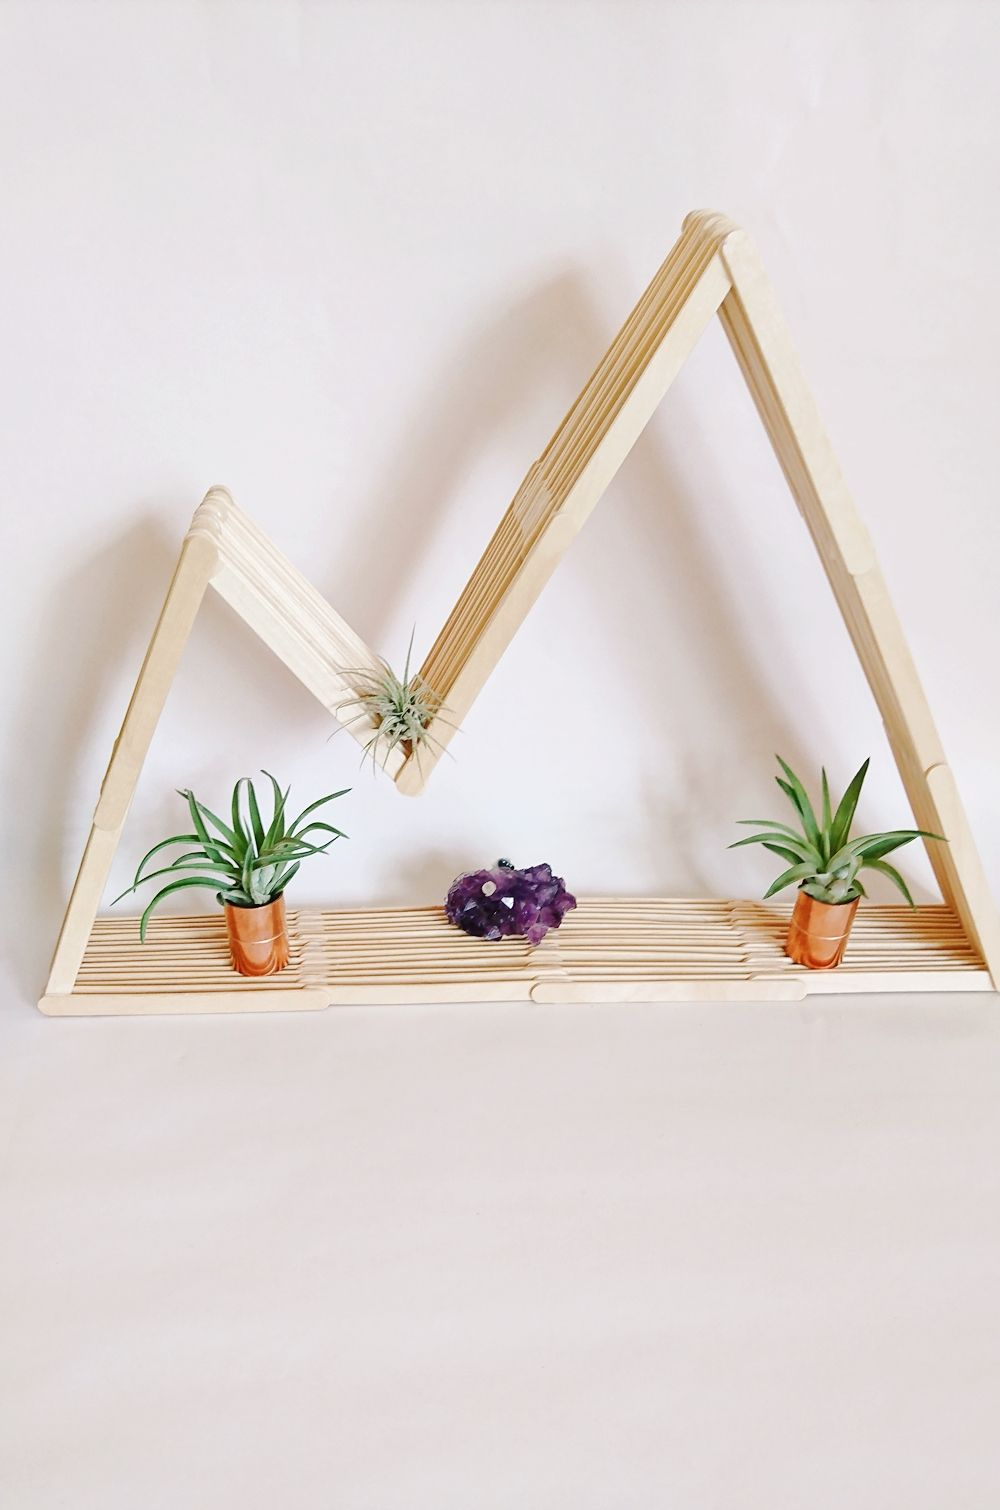 22 diy Shelves popsicle sticks ideas